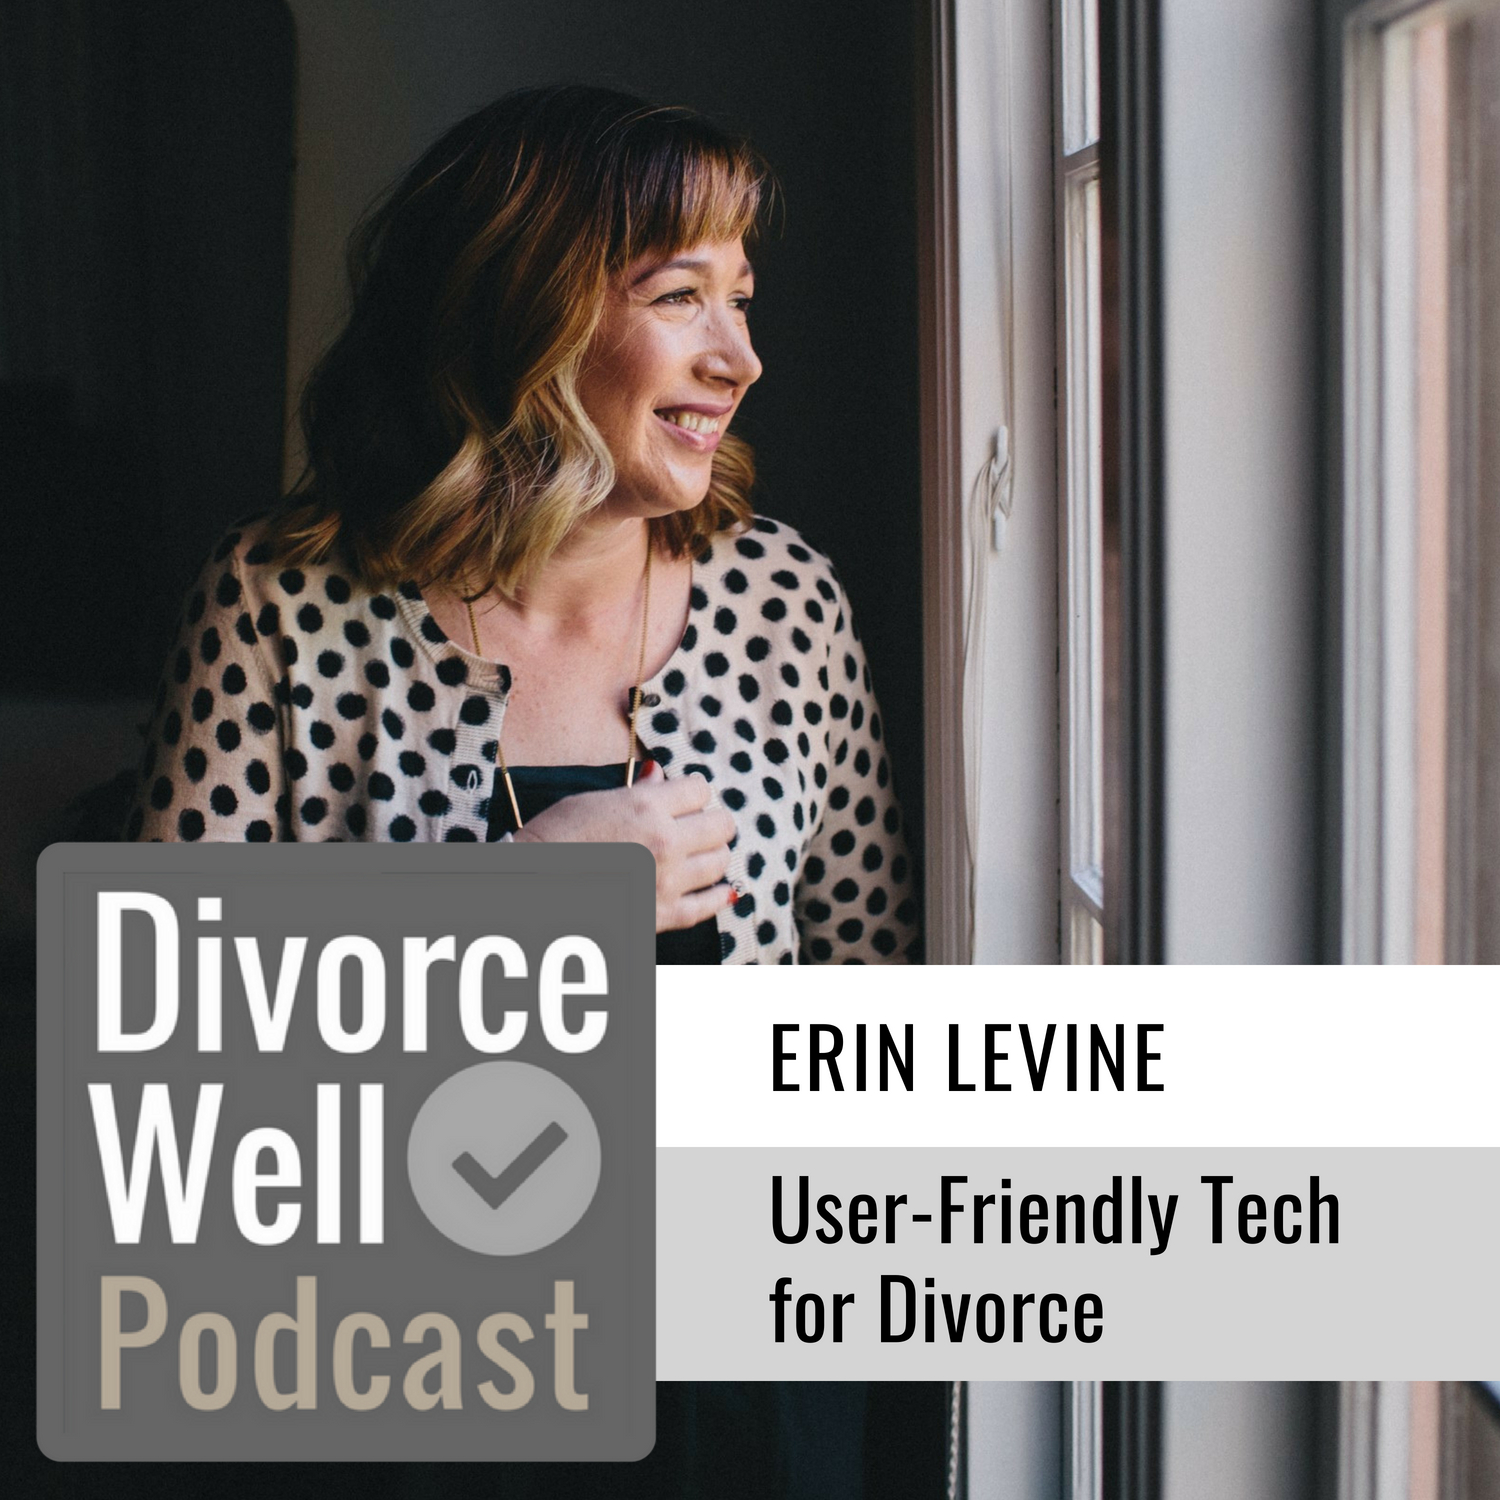 The Divorce Well Podcast - 24 - User-Friendly Tech for Divorce, with Hello Divorce founder Erin Levine